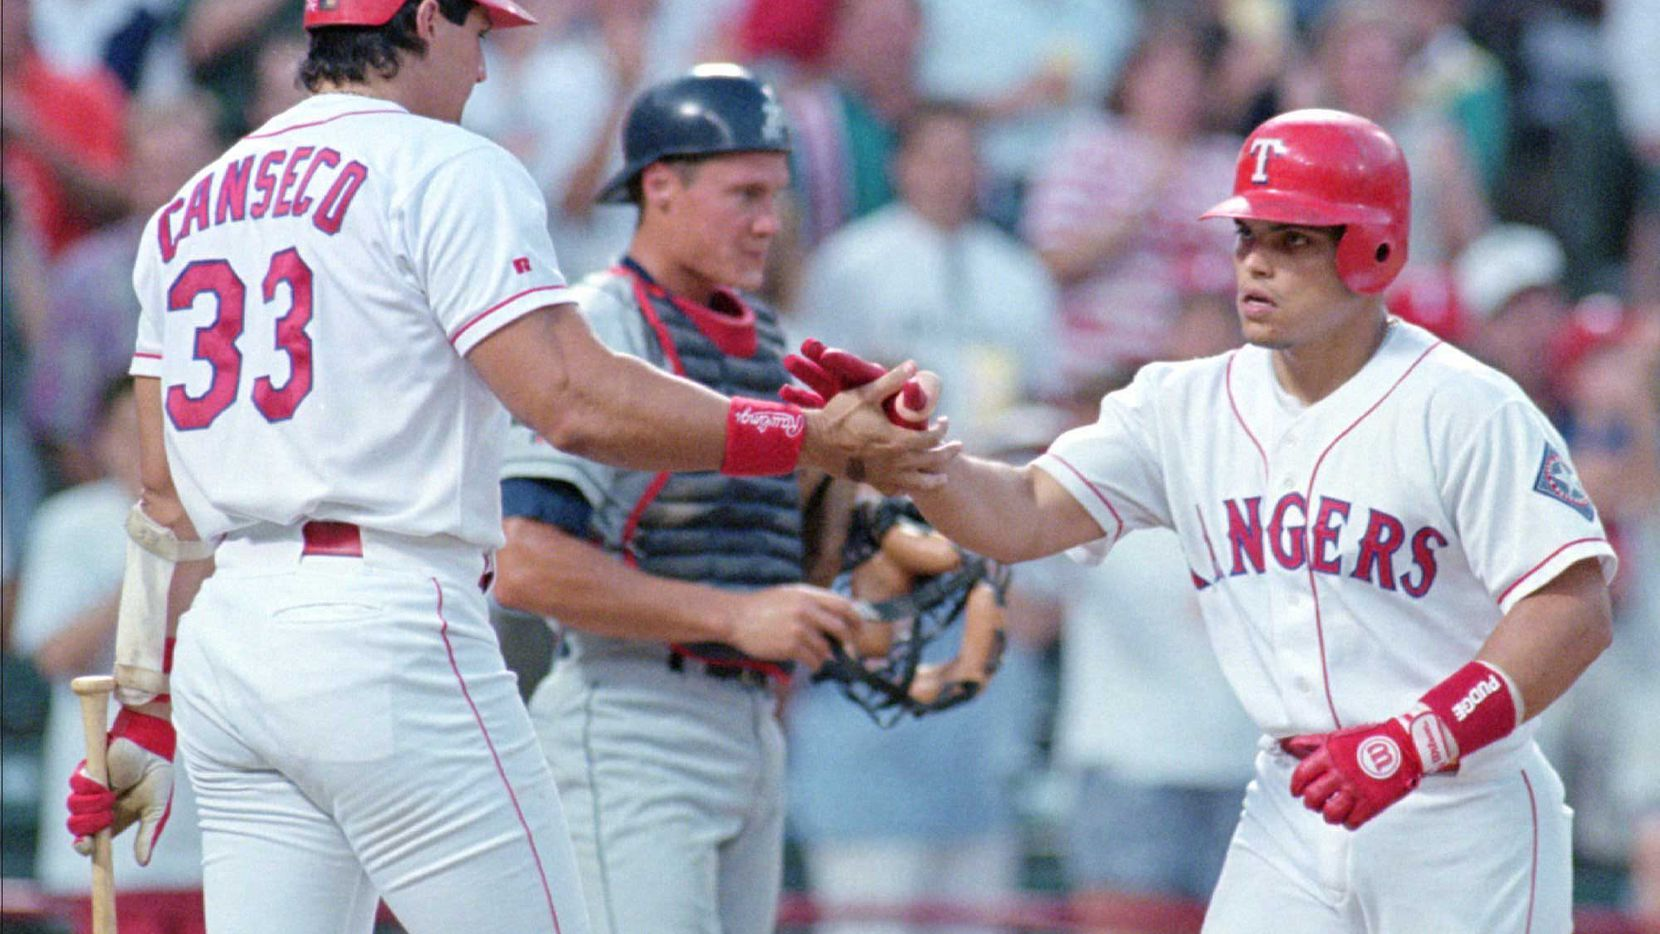 Former Rangers teammates Jose Canseco (left) and Ivan Rodriguez